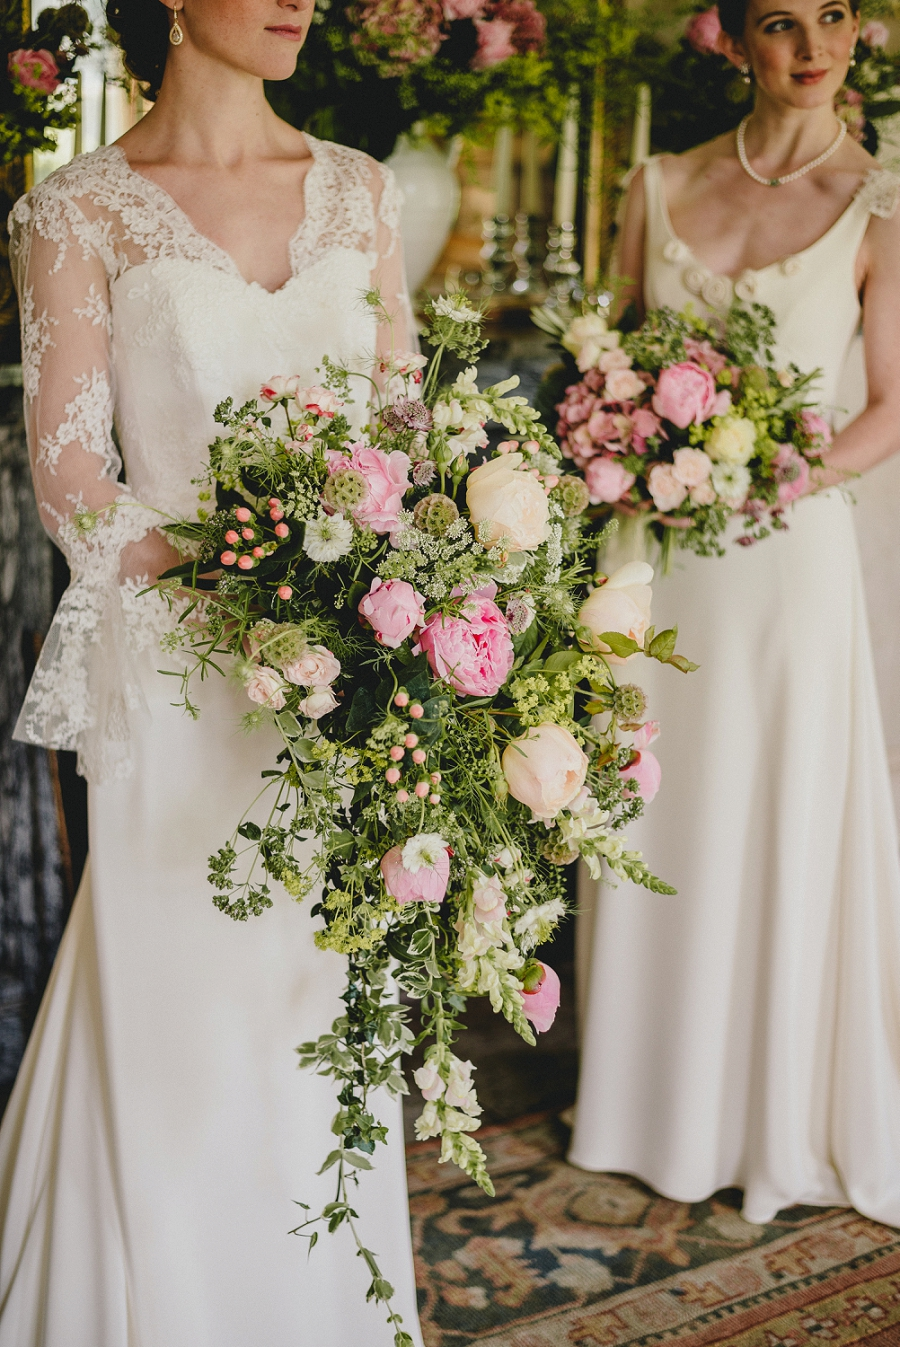 Heirloom wedding inspiration with Emily Andrews Events at Thurning Hall. Photo credit Benjamin Mathers Photography (5)